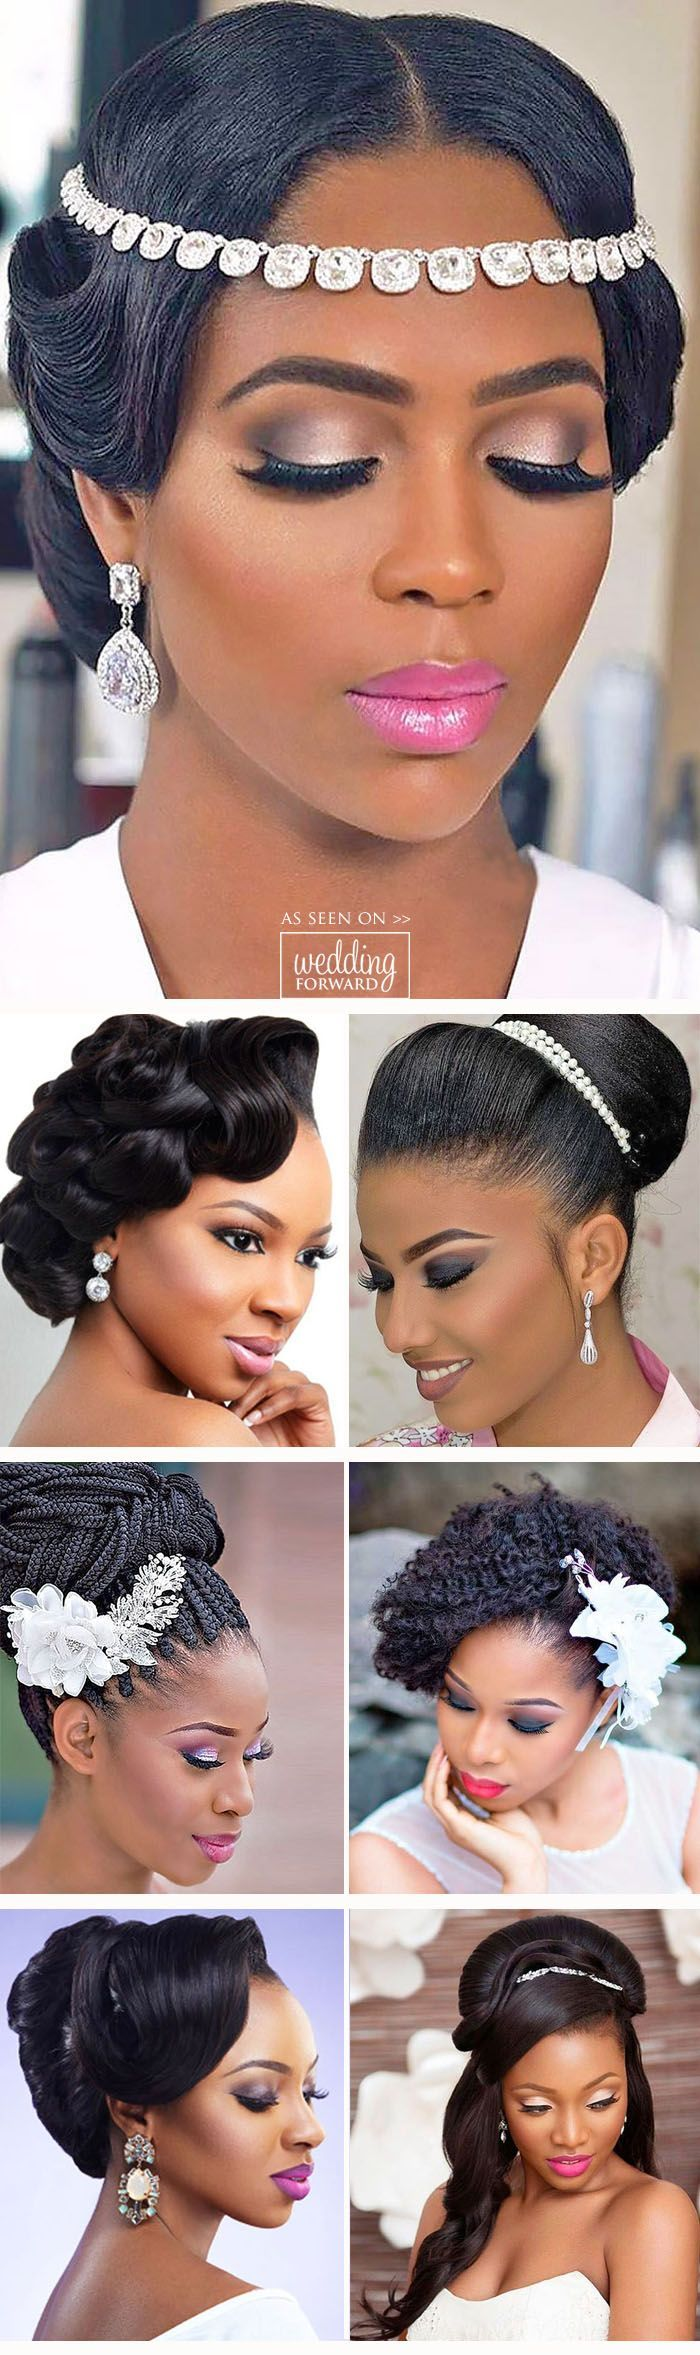 black women wedding hairstyles it is not a difficult task to